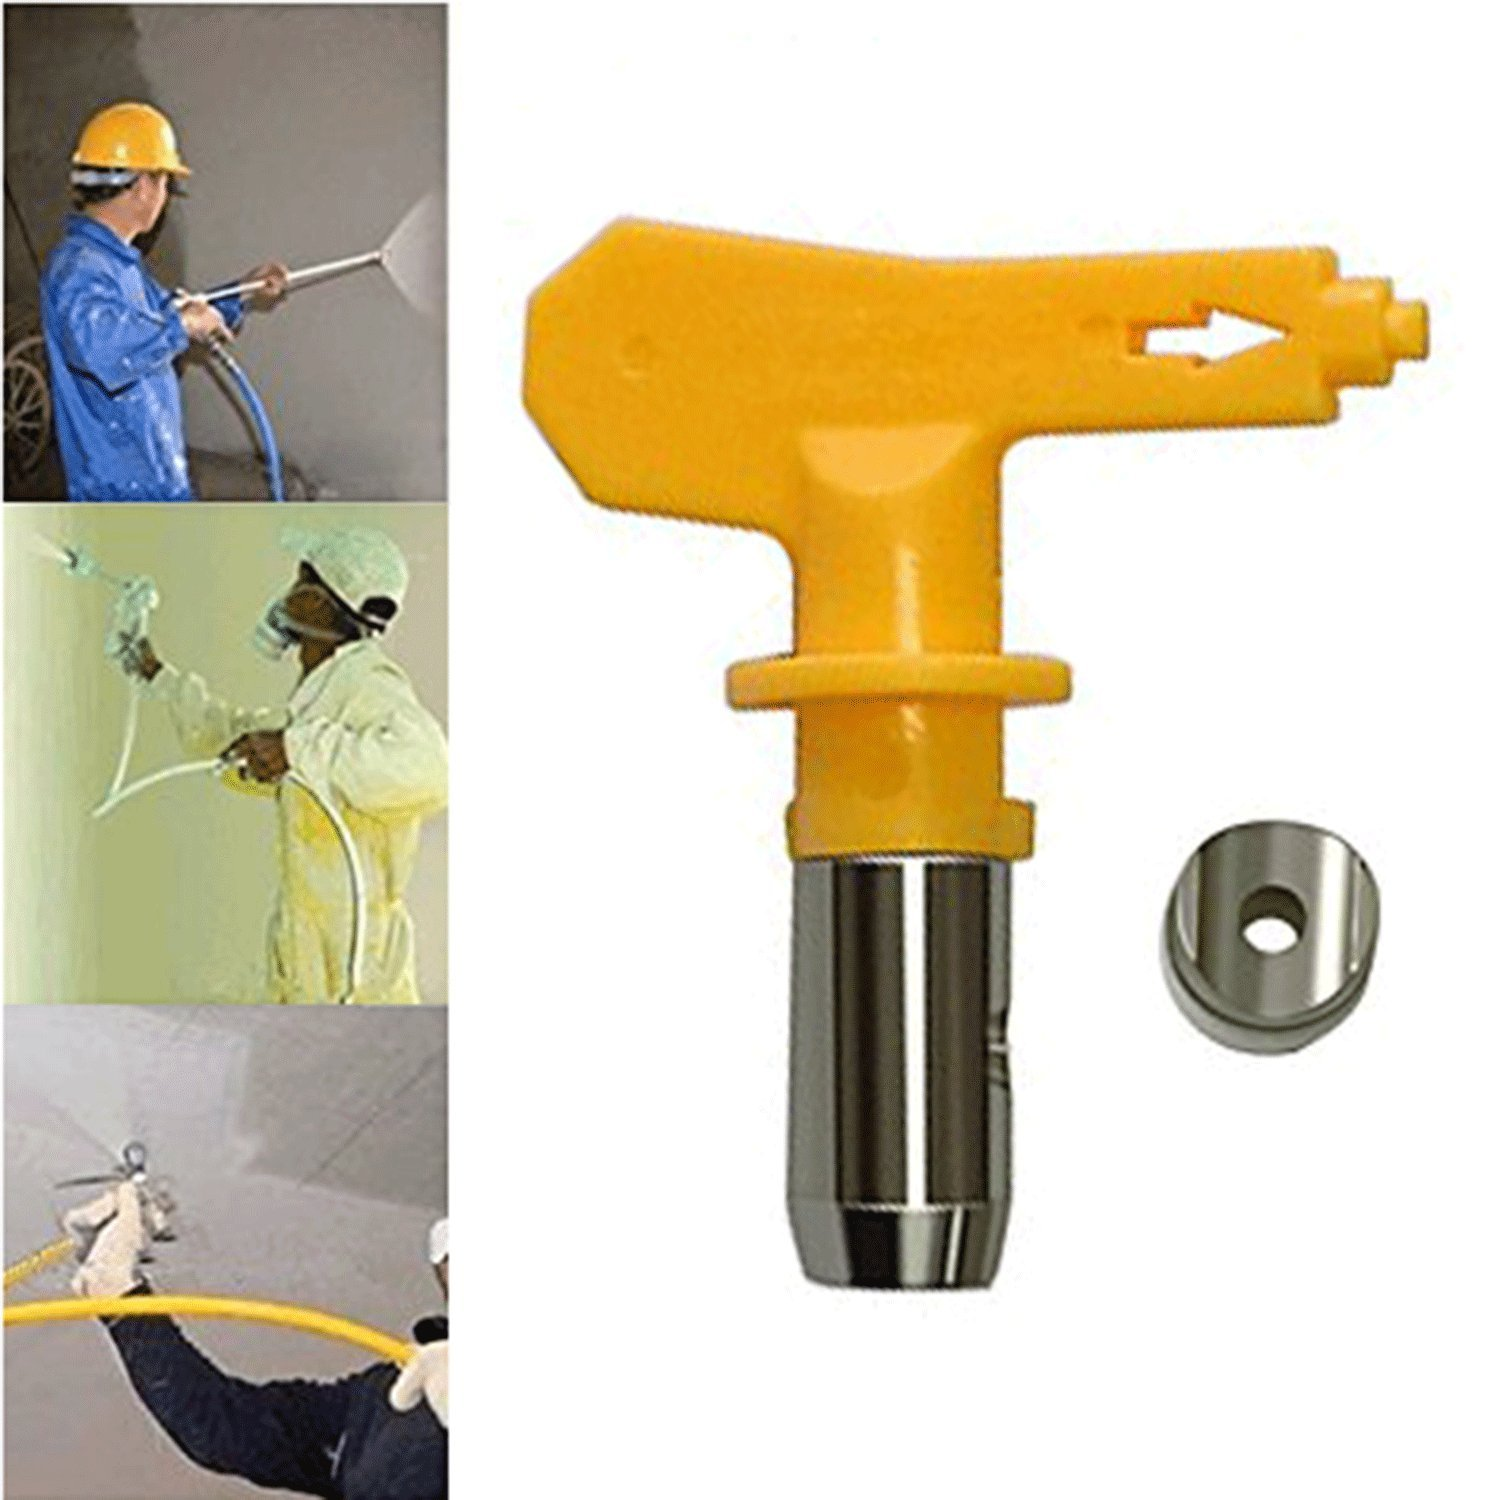 JWGJW Airless Spray Tip For Airless Spray Gun And Paint Sprayer Nozzle (517)